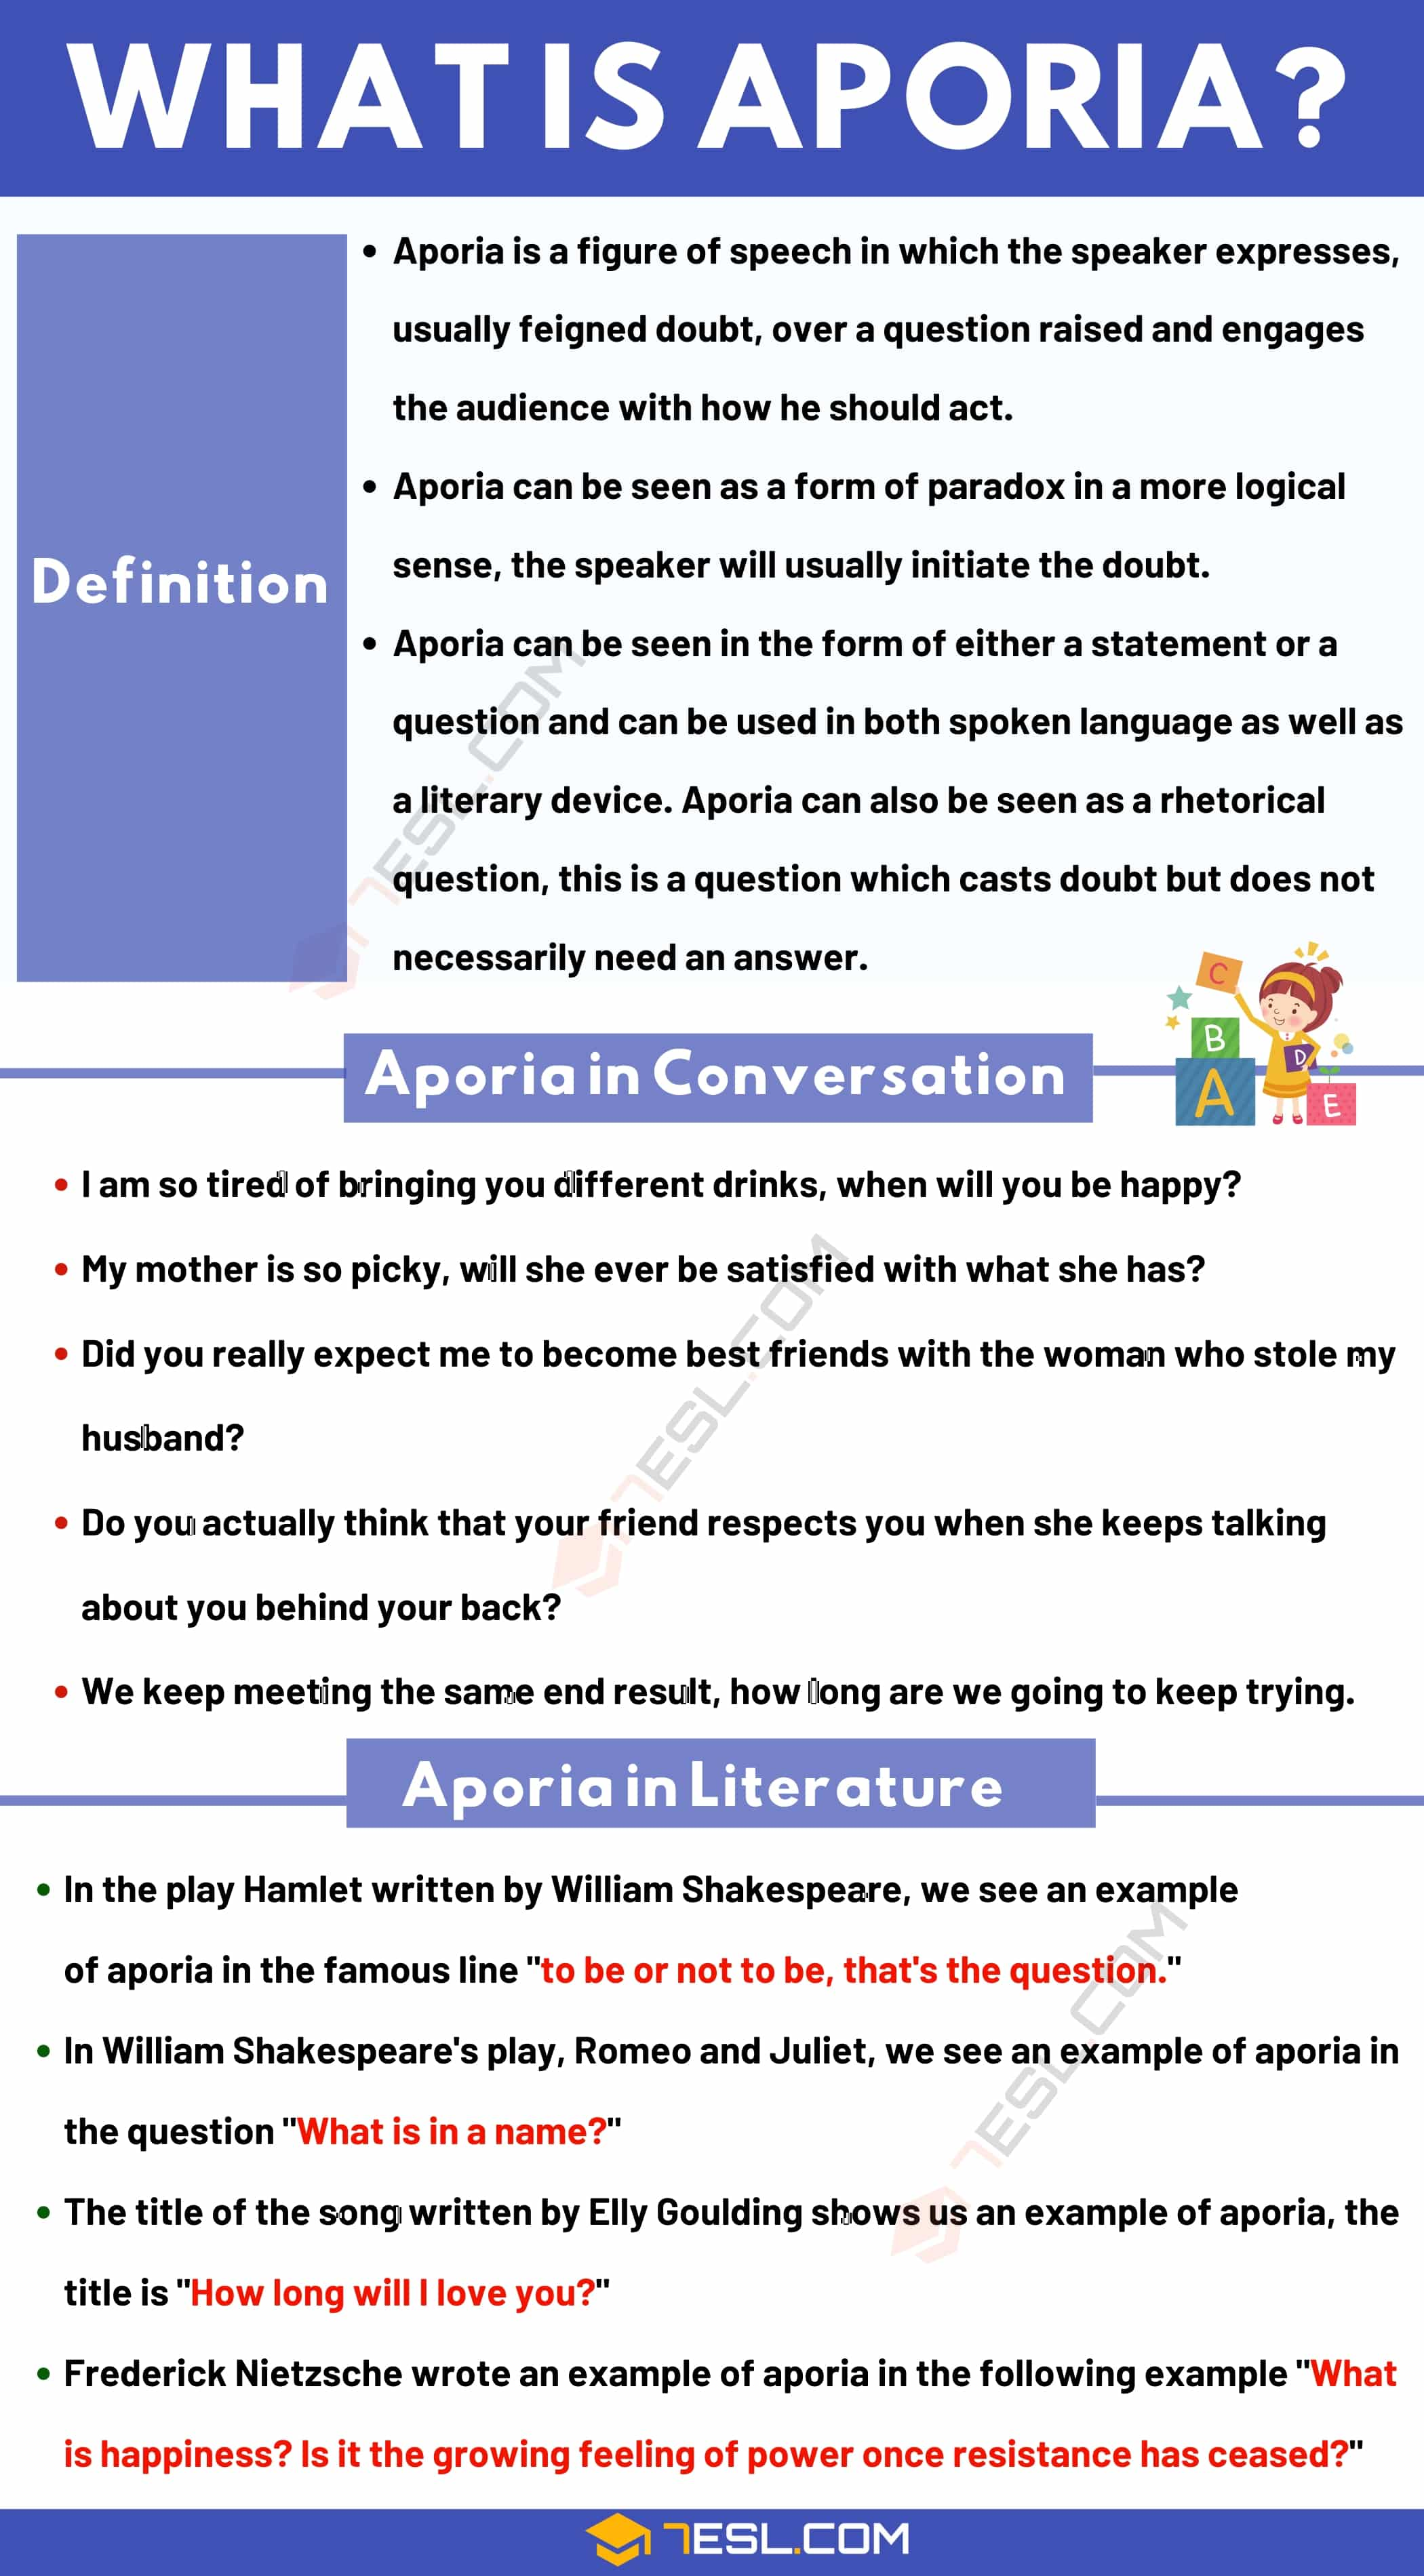 Aporia: Definition and Examples of Aporia in Speech and Literature